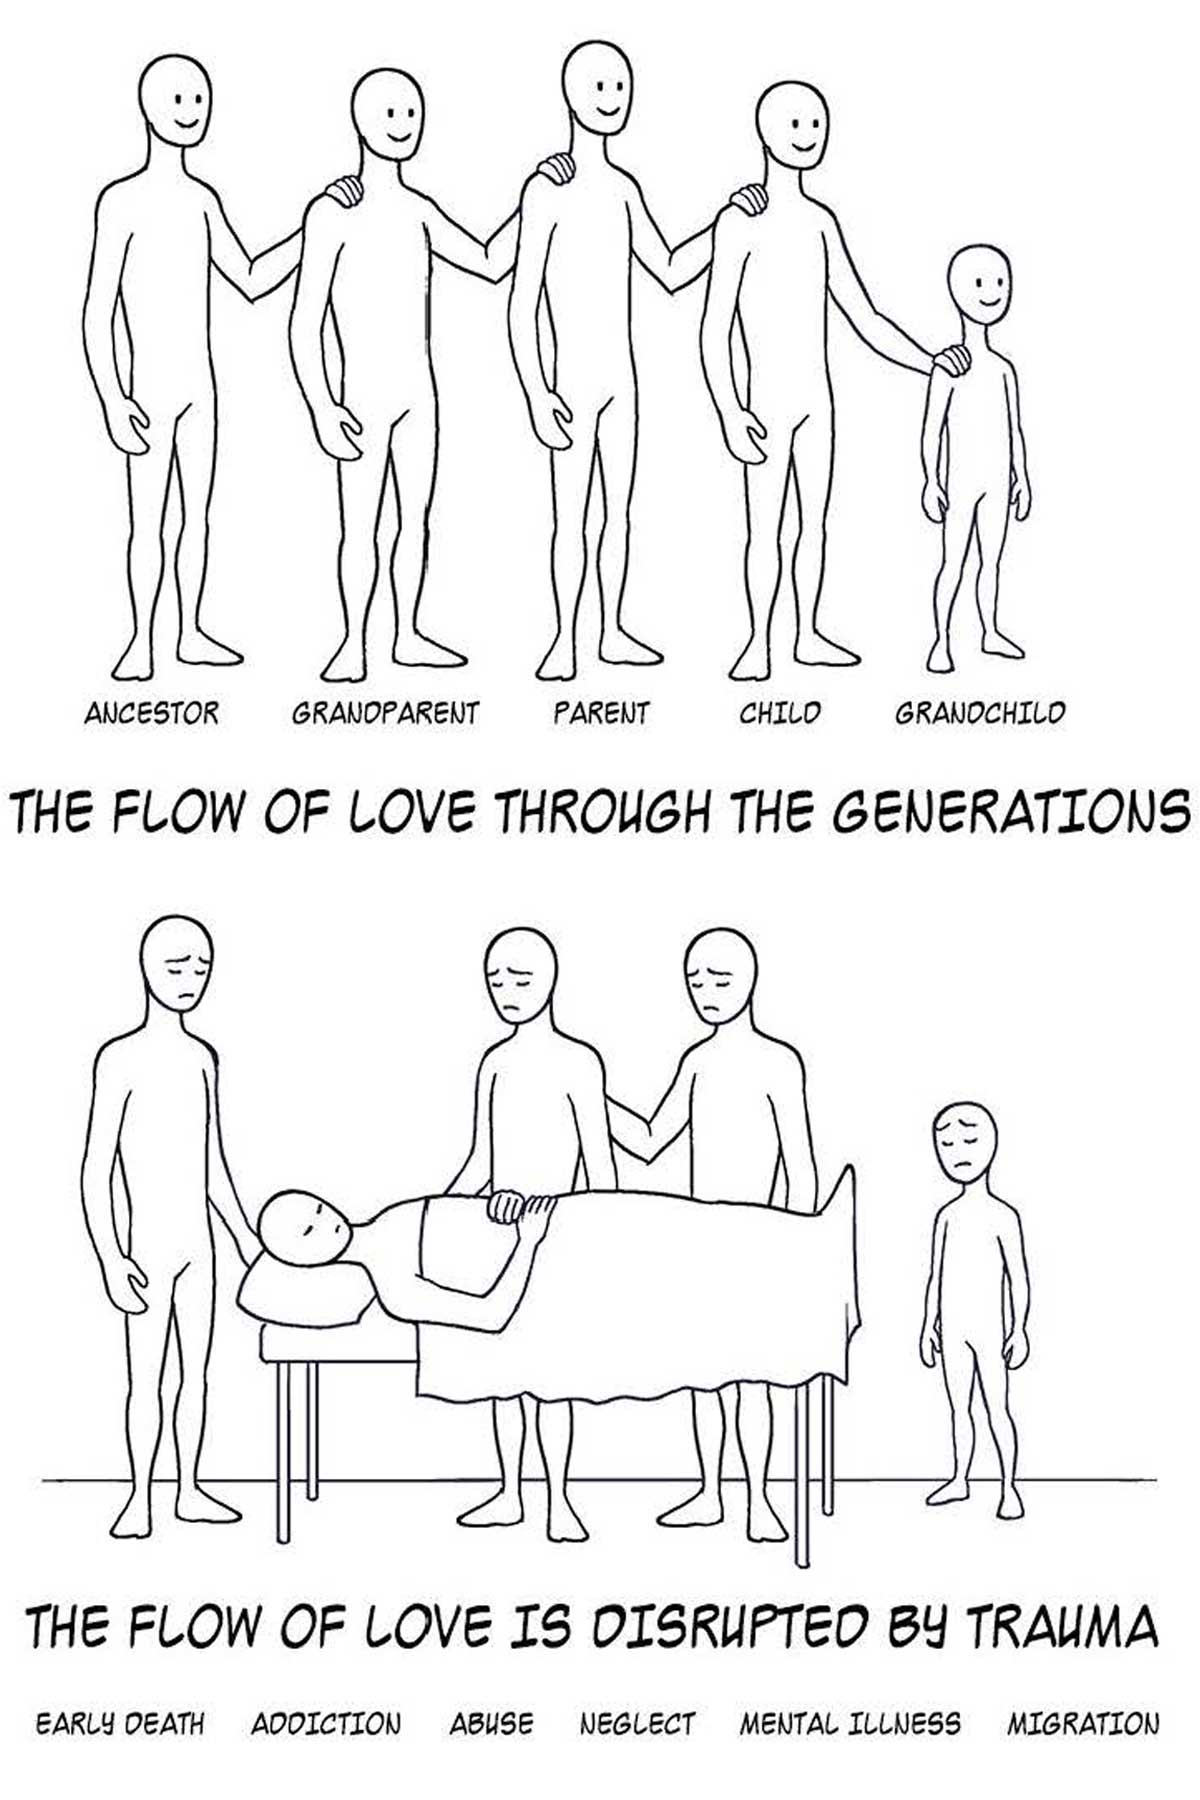 illustration of a family system disrupted by trauma which blocks the flow of love